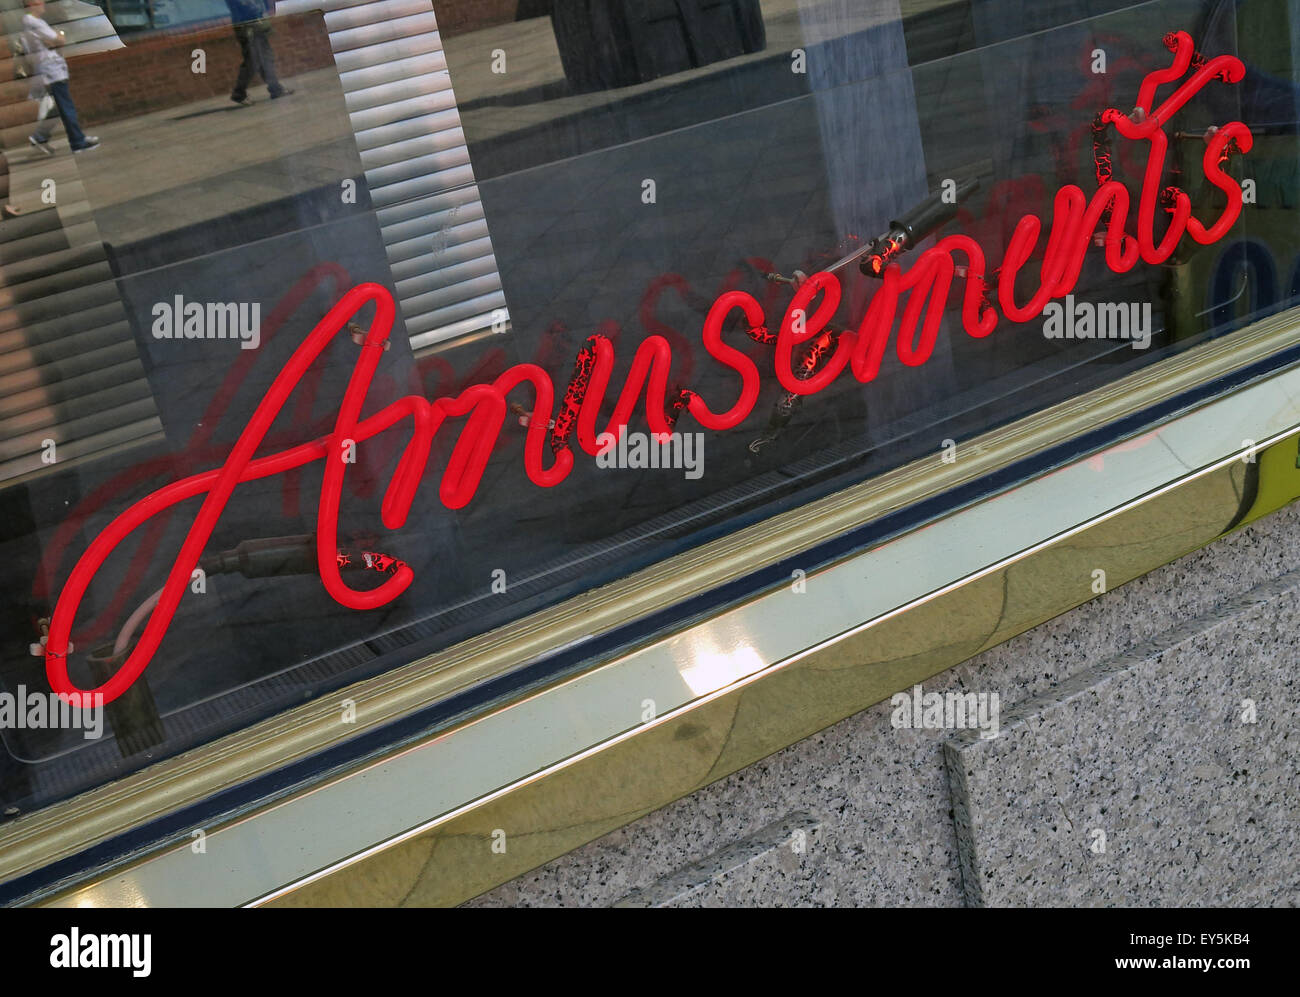 Red Neon Amusements sign in a window - Stock Image